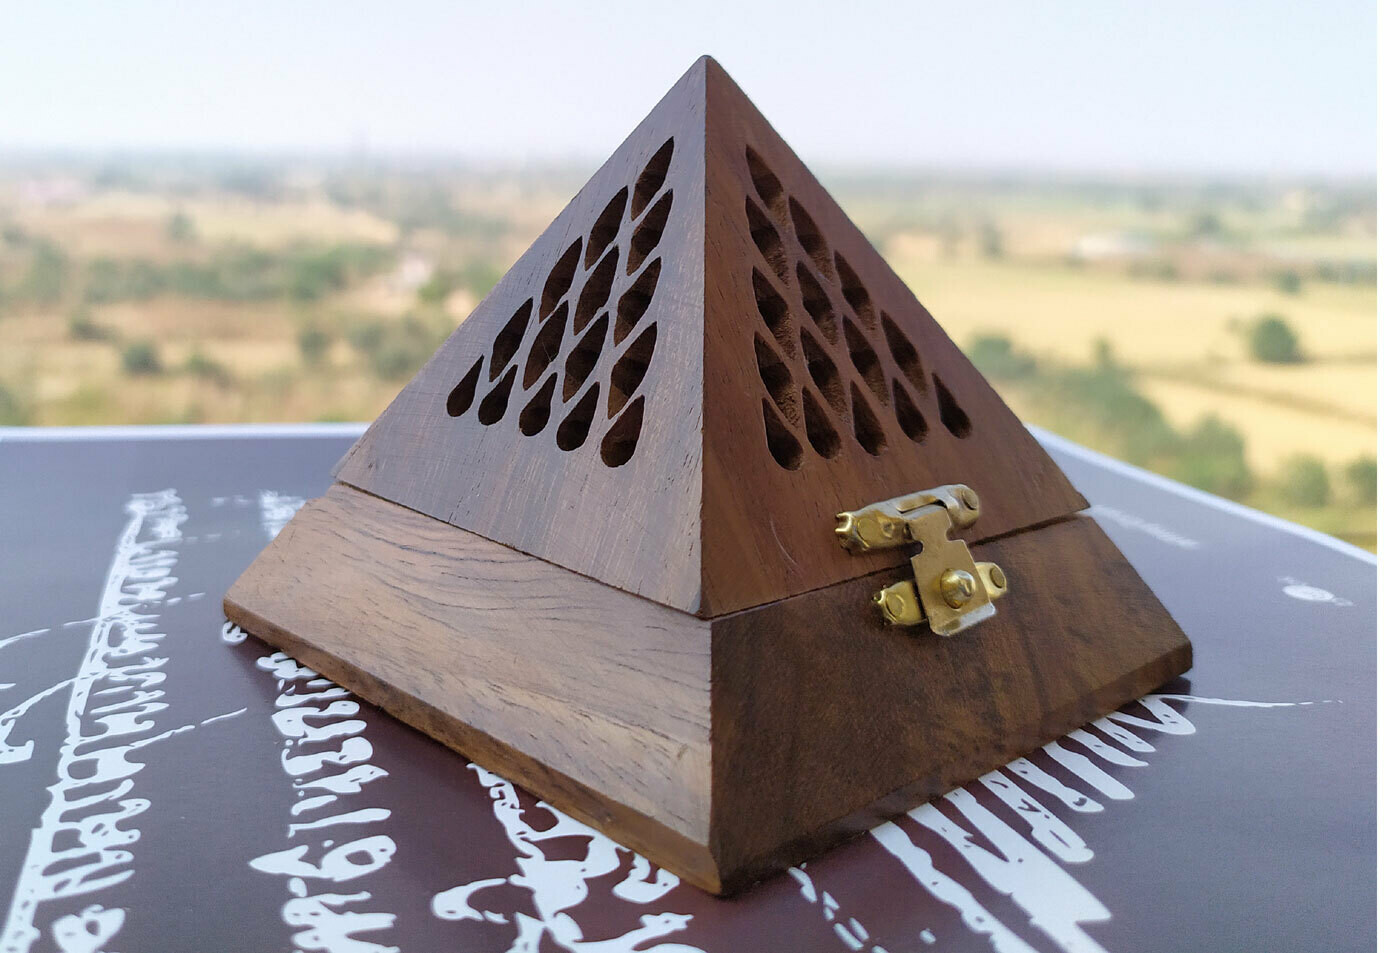 Multi-utility Pyramid Energy Box    Recommended as per Vastu Shastra or Feng Shui